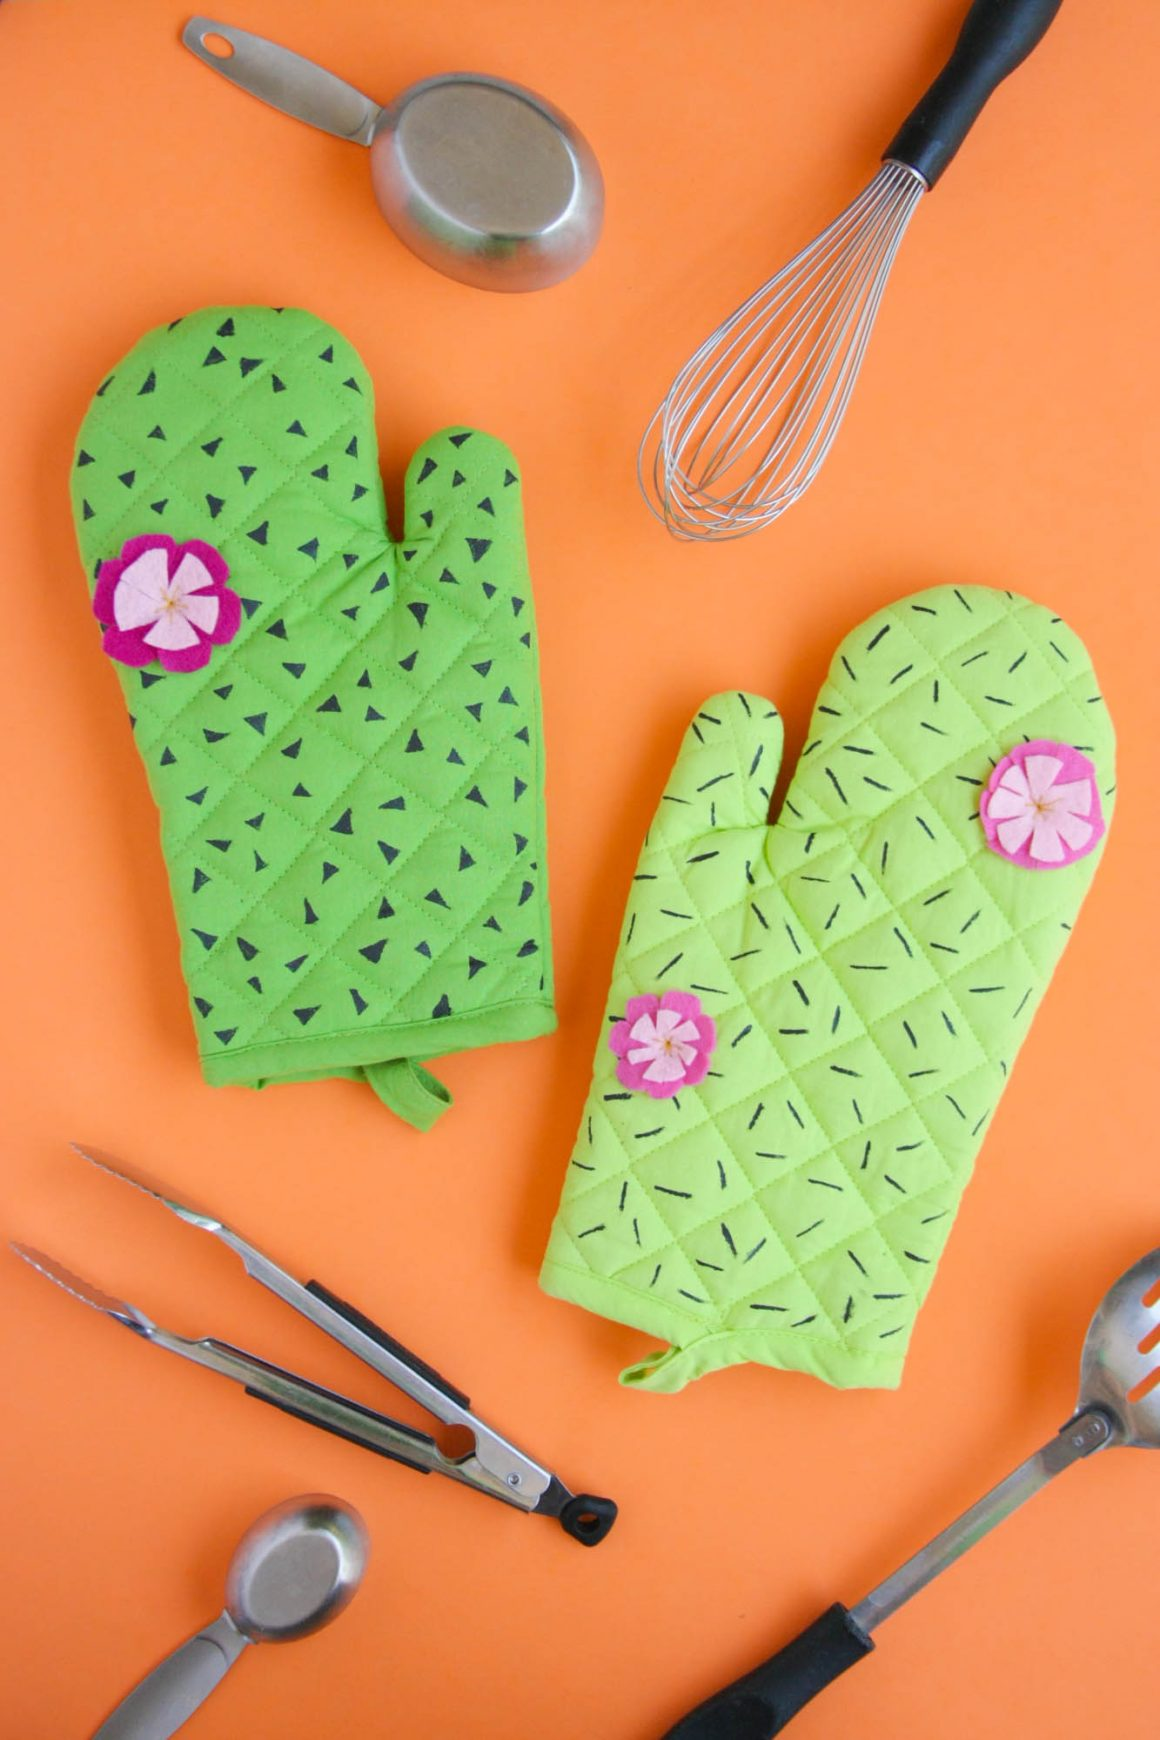 50 Easy Handmade Gift Ideas You'll Love: DIY Cactus Oven Mitts from Mollie Pop